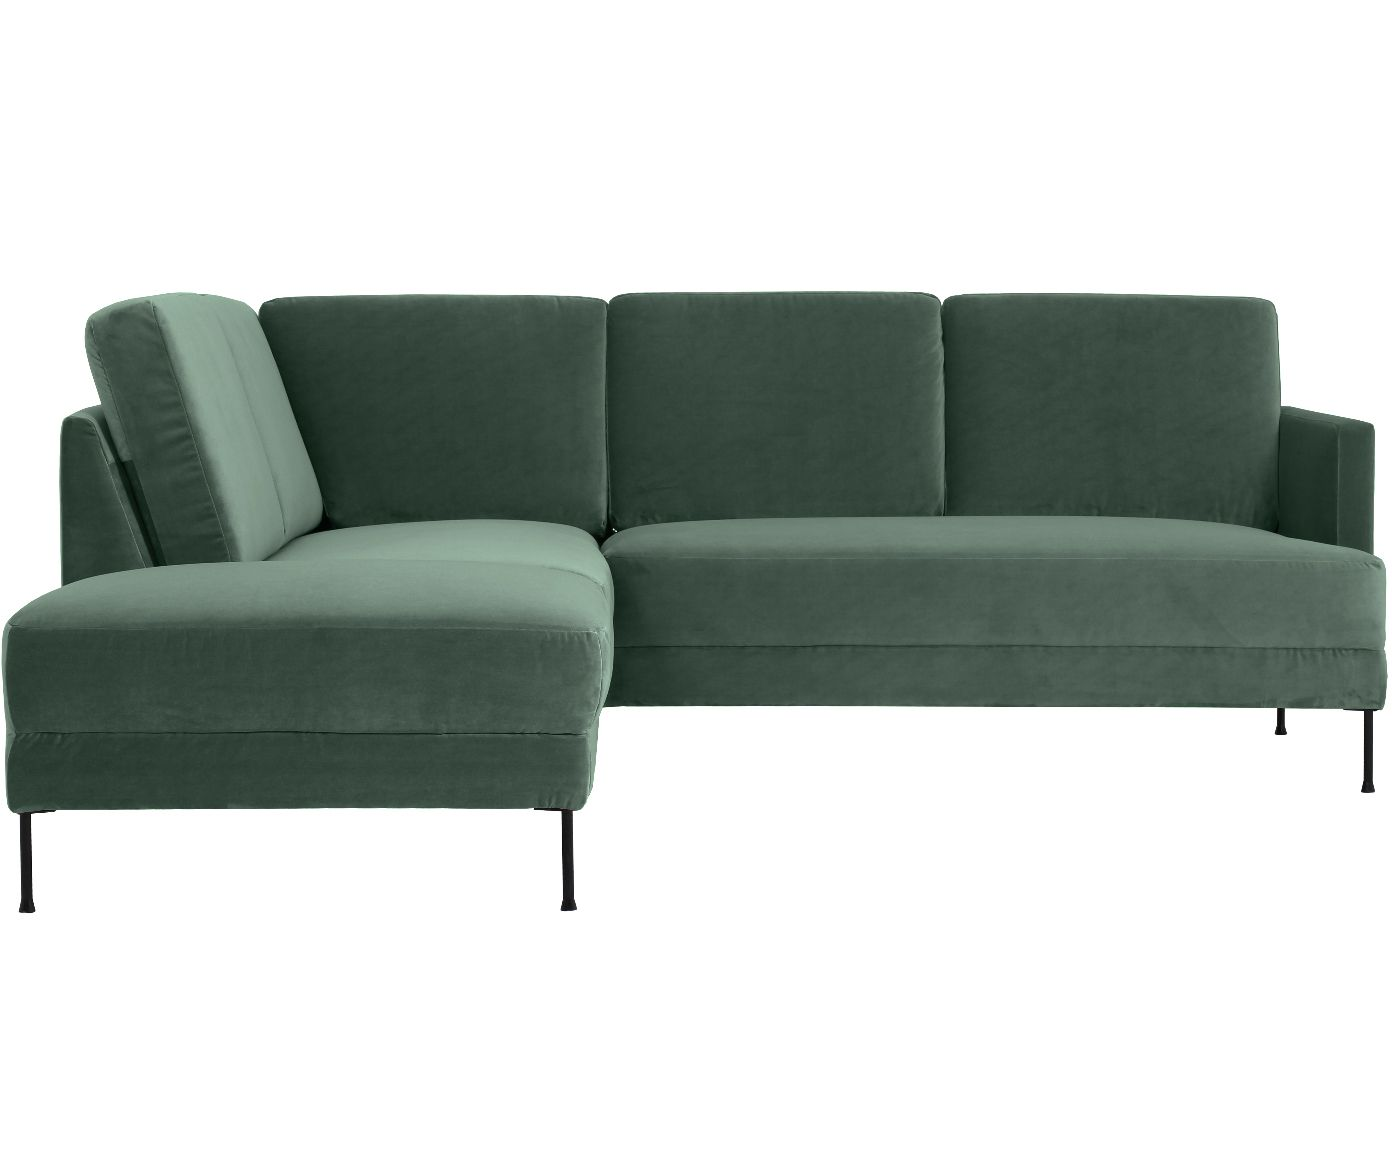 Ecksofa Norwich Samt Ecksofa Fluente New Berlin Flat Sofa Couch Furniture